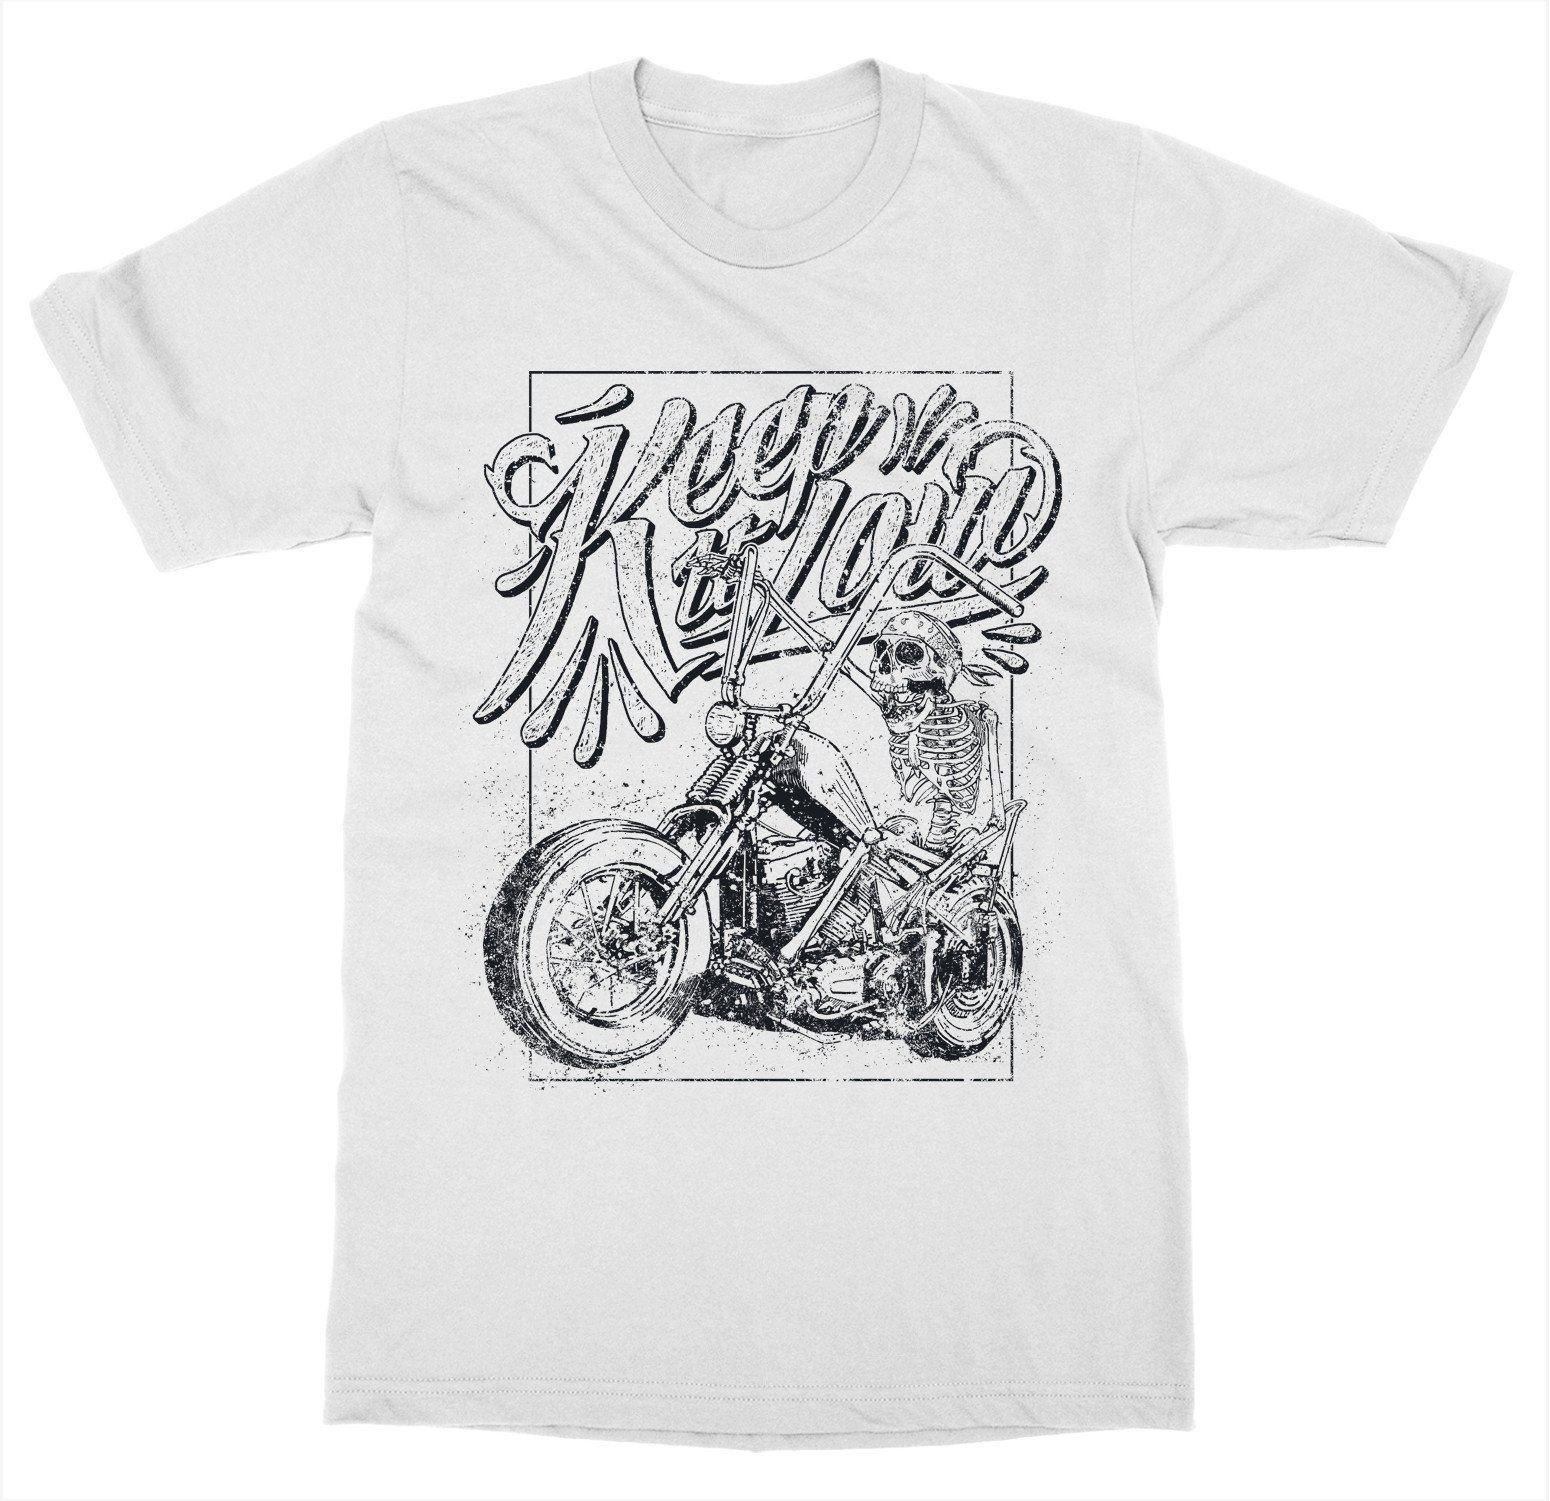 7e49b567d Keep It Low T Shirt Ride Or Die Vintage Motorcycle Club Gear Race Bike Shop  WingFunny Unisex Casual Tshirt Funny Slogan T Shirts Cool Shirt Design From  ...